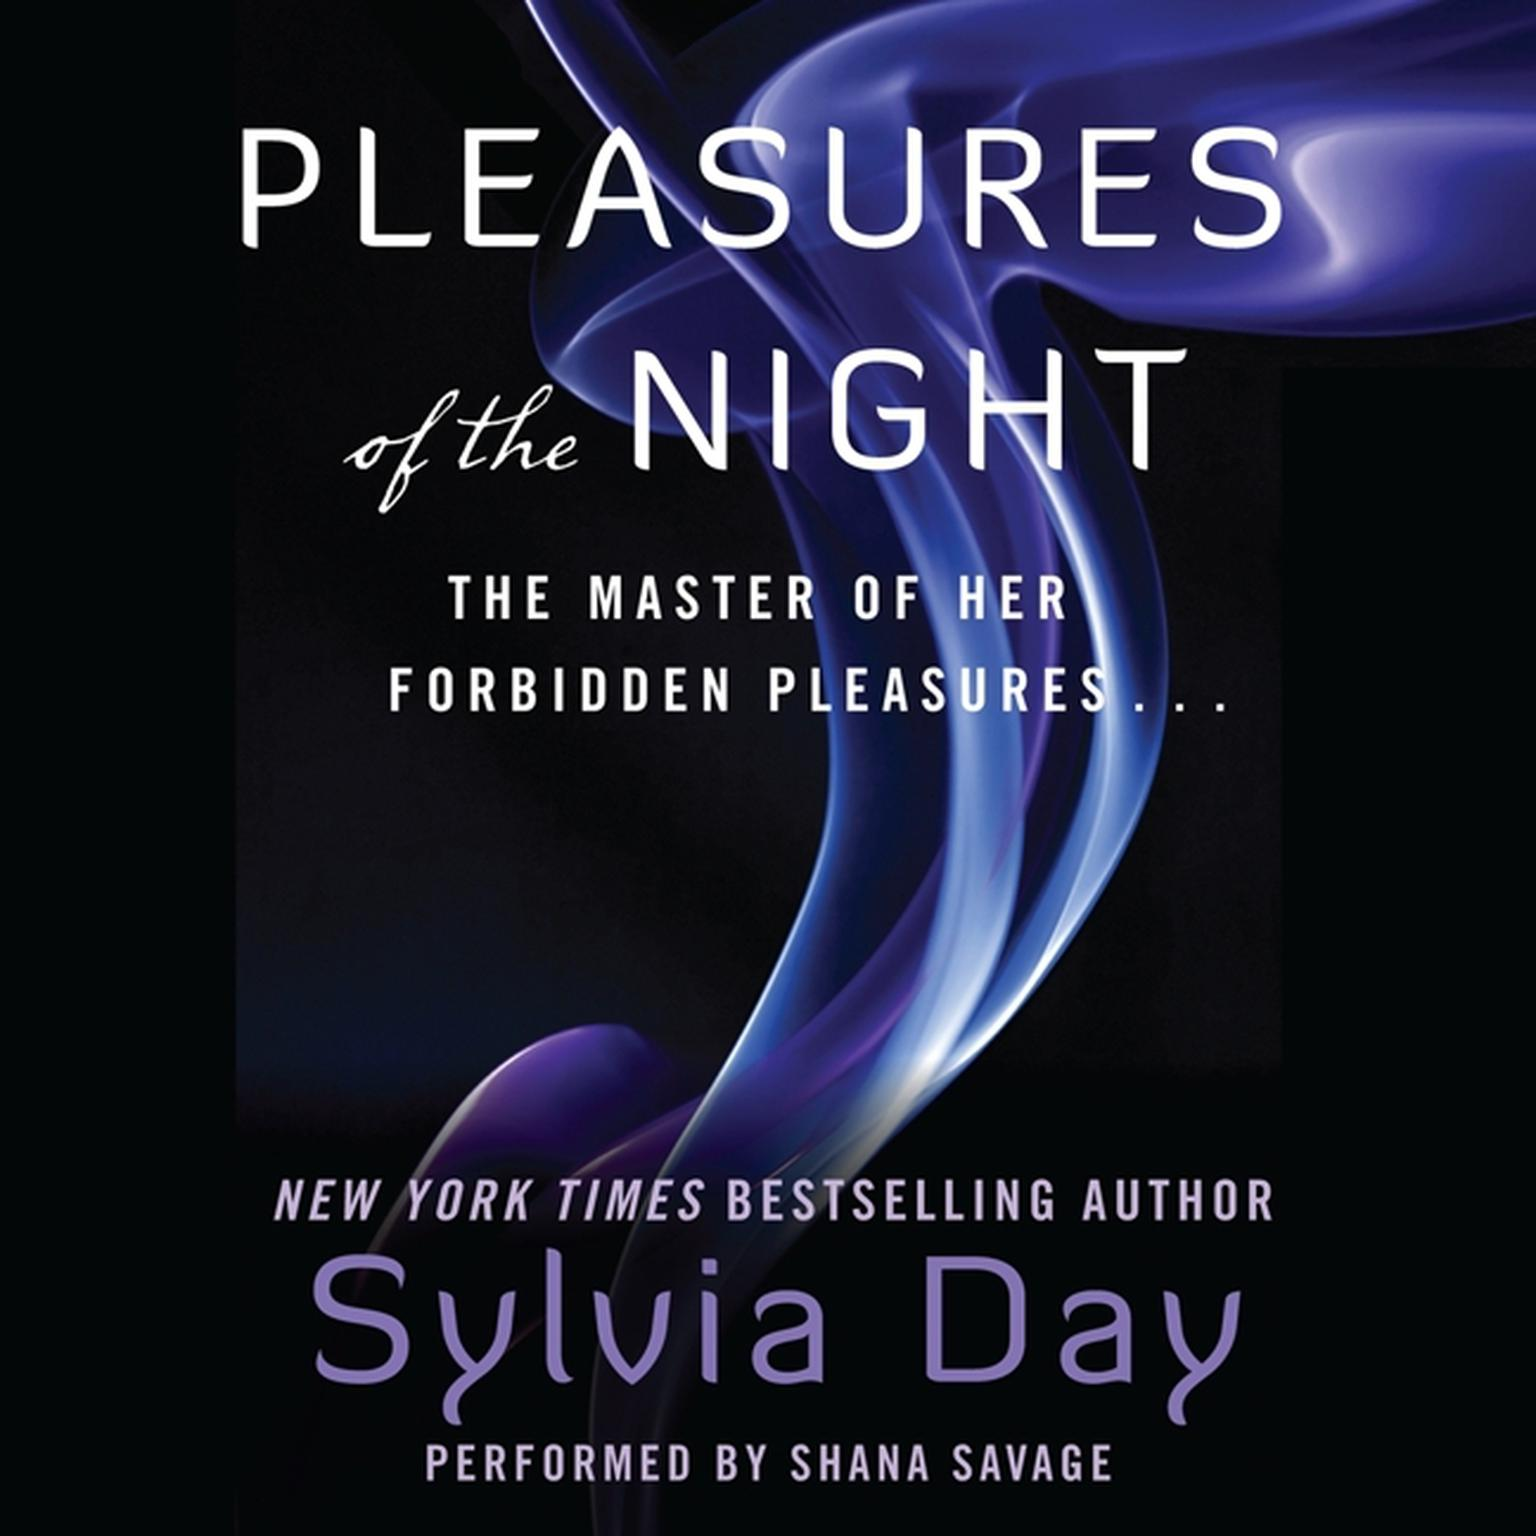 Printable Pleasures of the Night Audiobook Cover Art